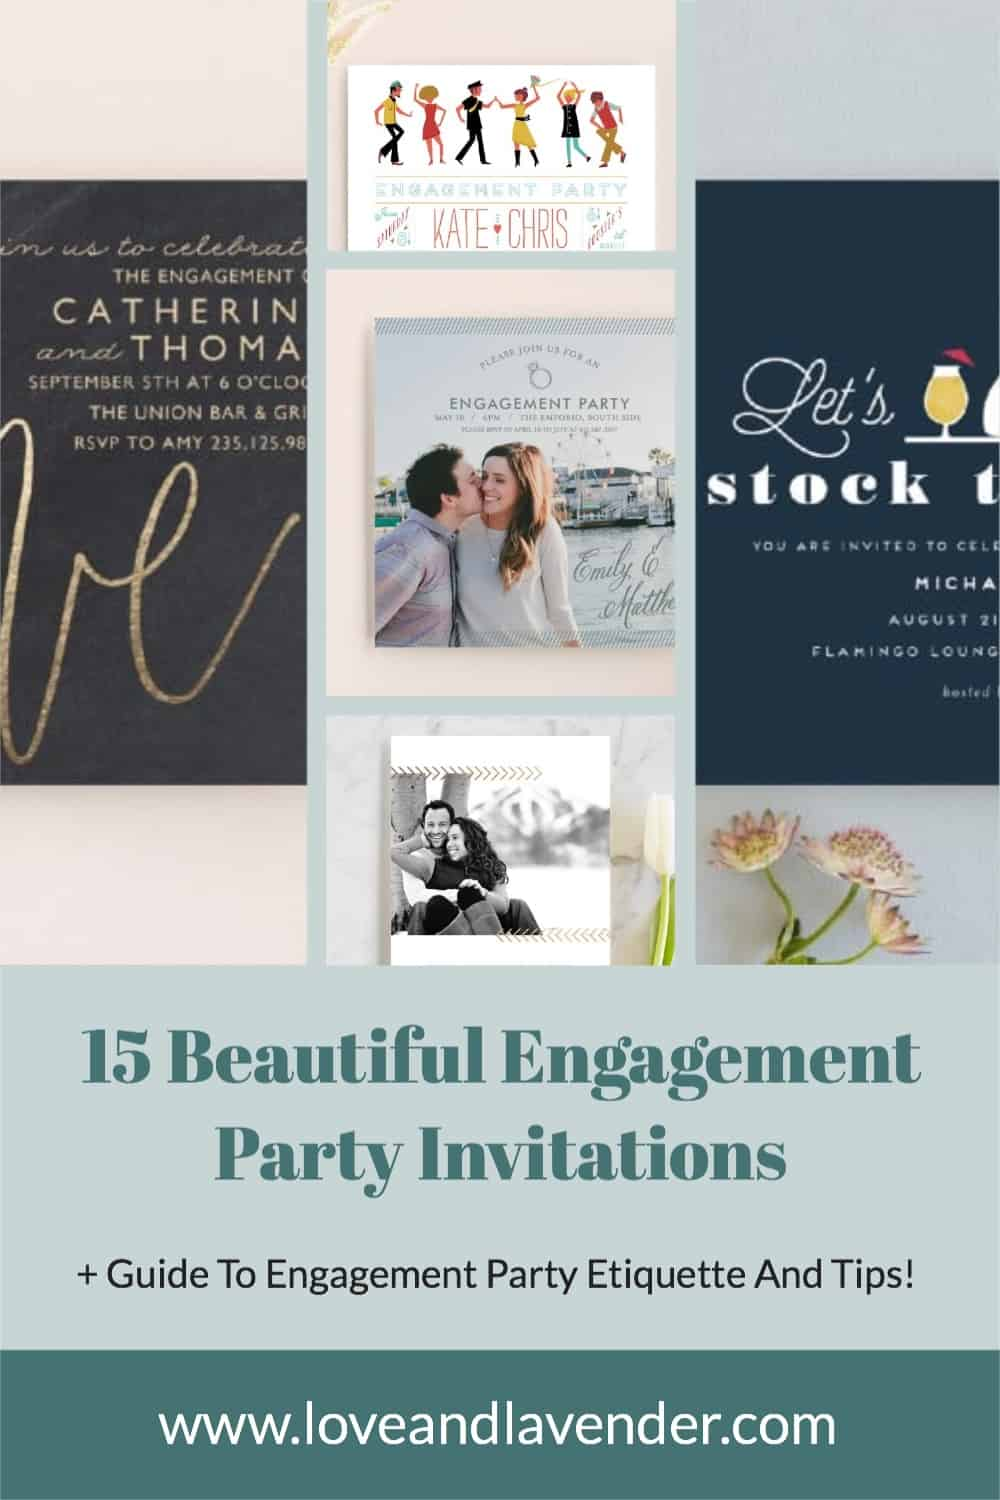 pinterest pin - engagement party invitations